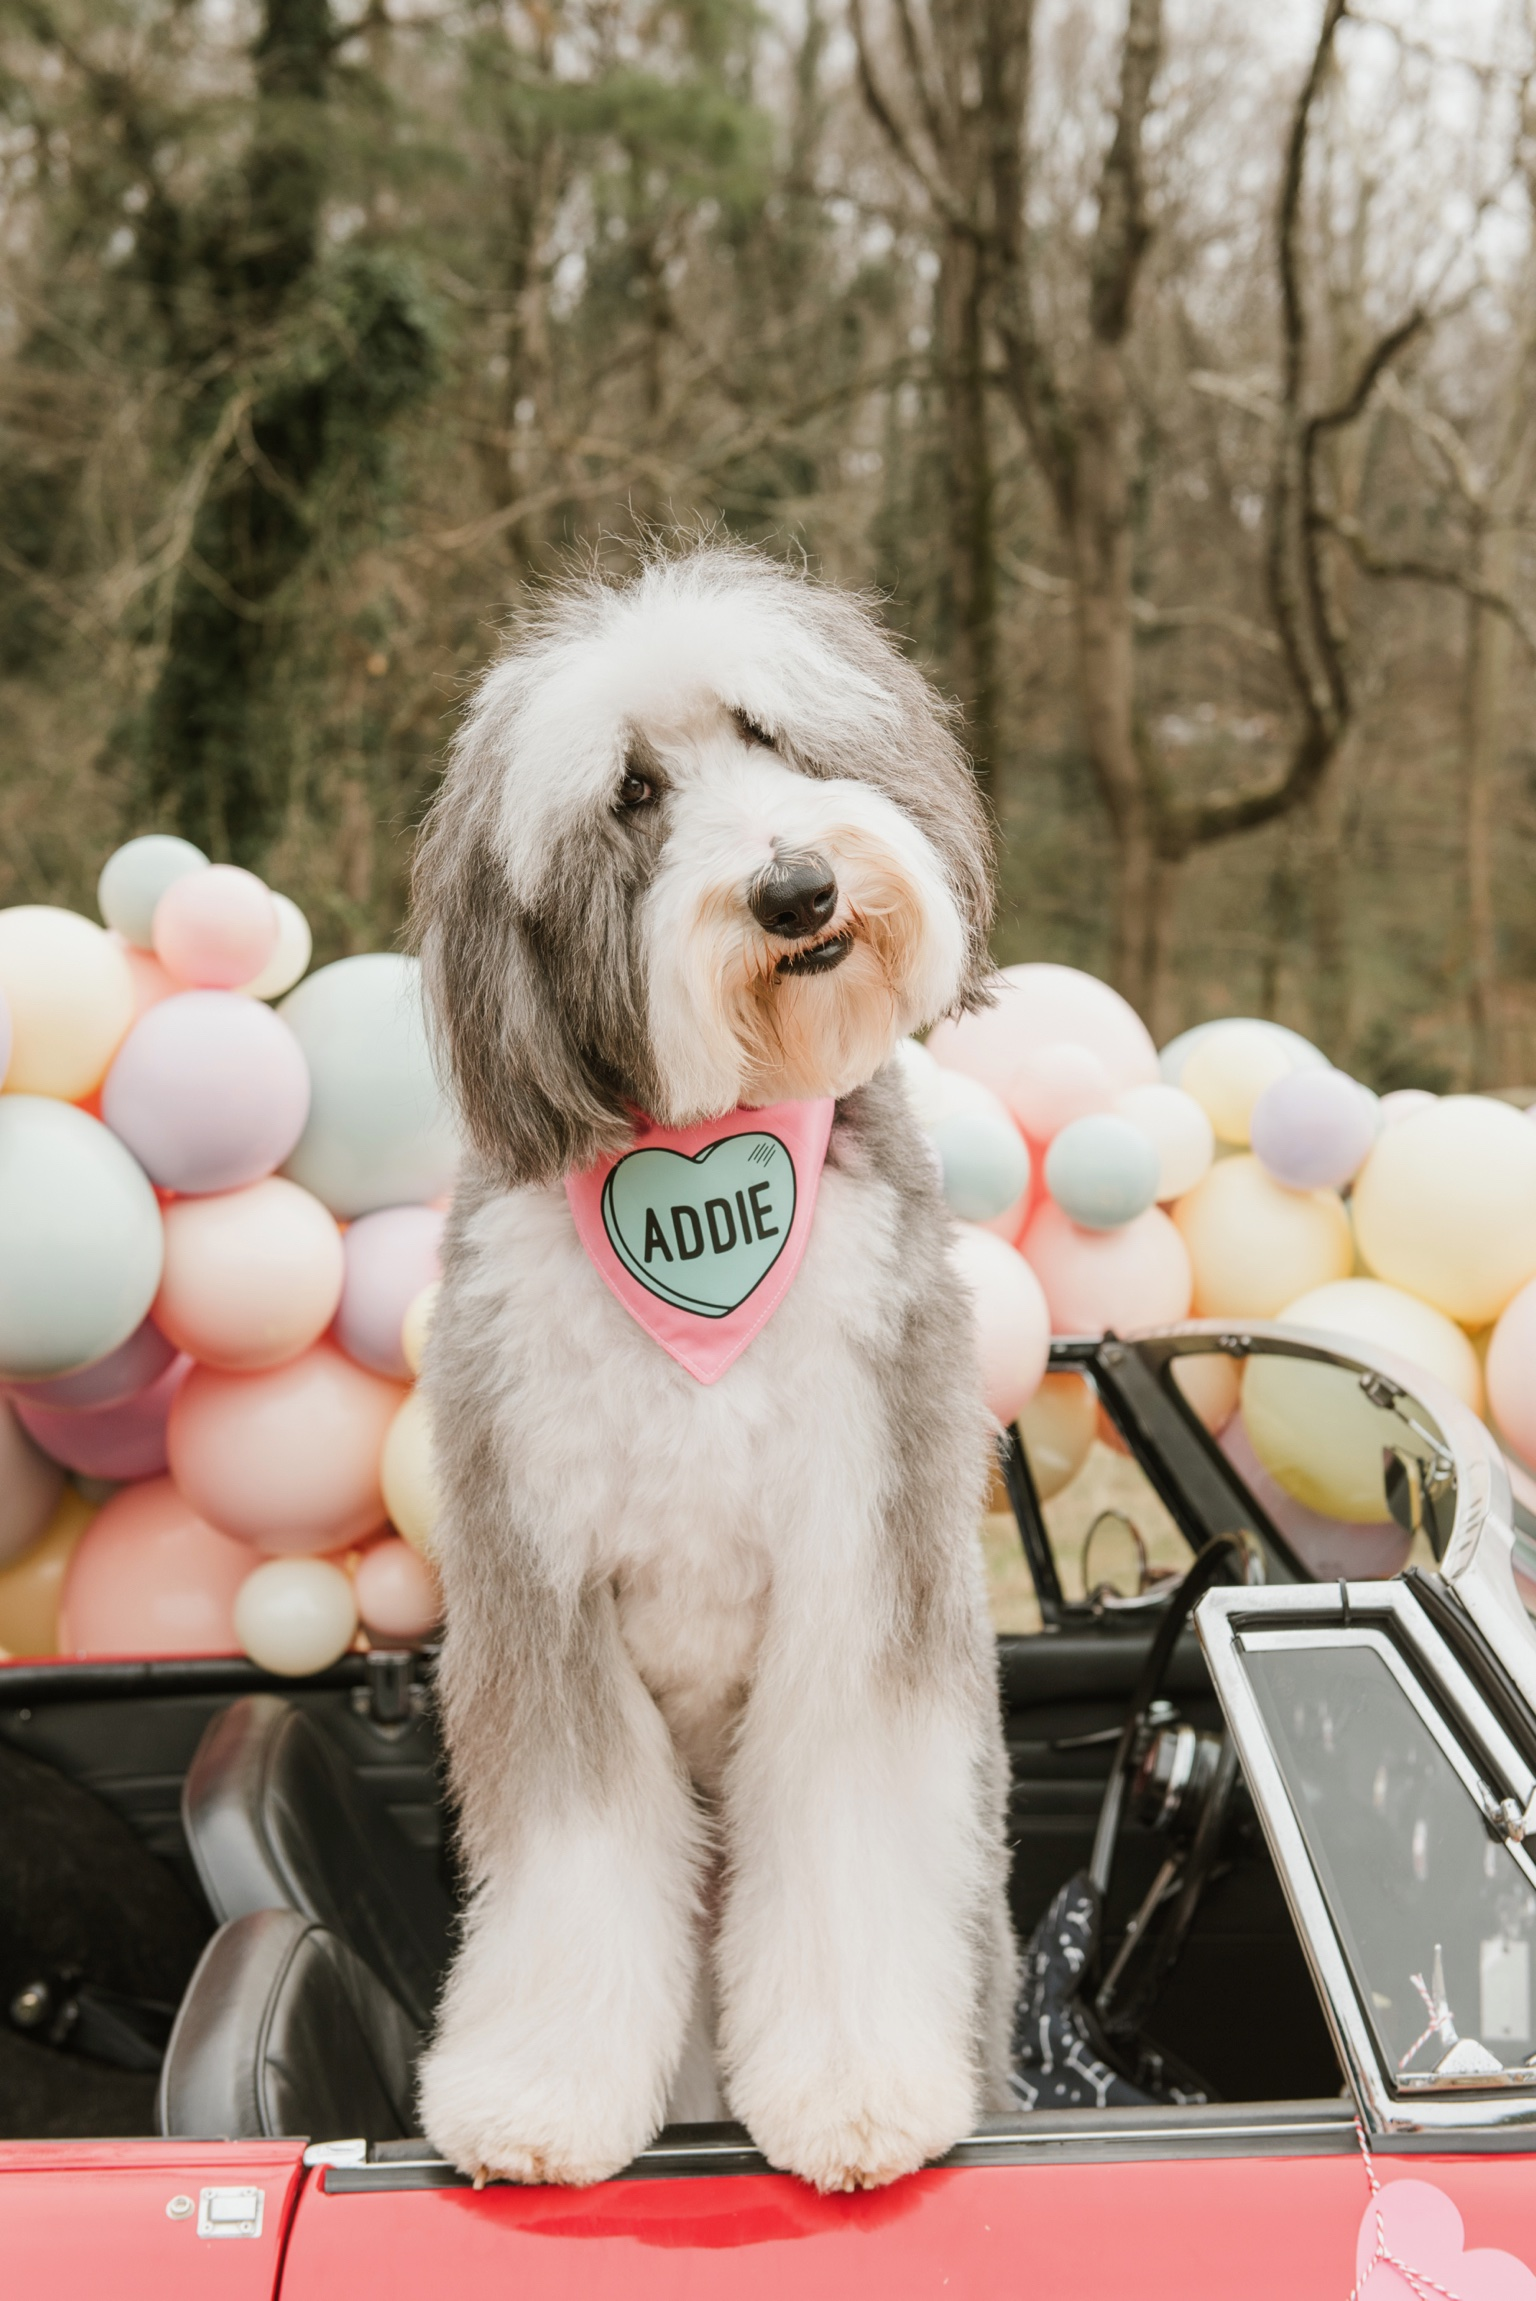 ADDIE - I am Addie! I am a 2 year old sheepadoodle. I am half old English sheepdog, half poodle, and all #ShaggyChic! I am always playful and a canine superdoodle. I love to meet new people and pups, explore town, and herd sheep — errr…my goldendoodle fur-brother, Oliver. My hobbies also include having my photos taken, doing therapy work, and eating dog cookies (but if you don't have any, human cookies will do just fine, thank you!)